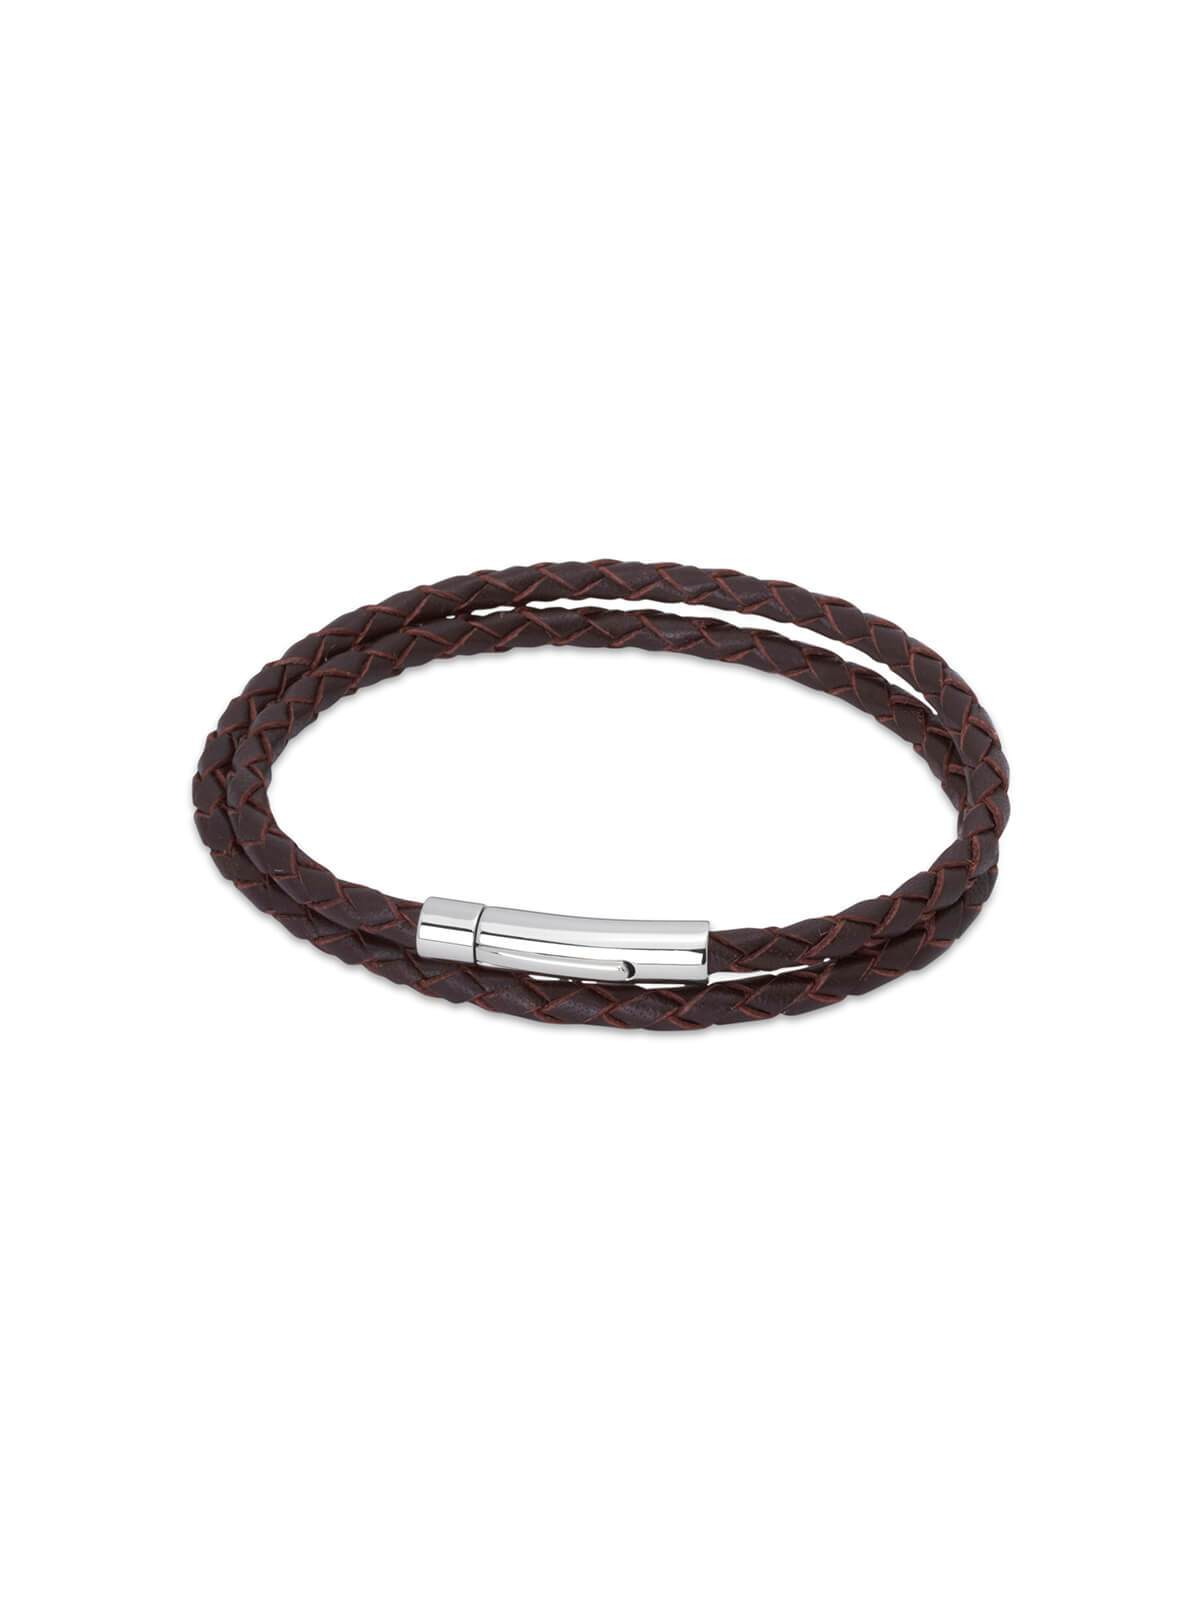 Unique & Co. 21cm Dark Brown Leather Double Wrap Bracelet B62DB/21CM